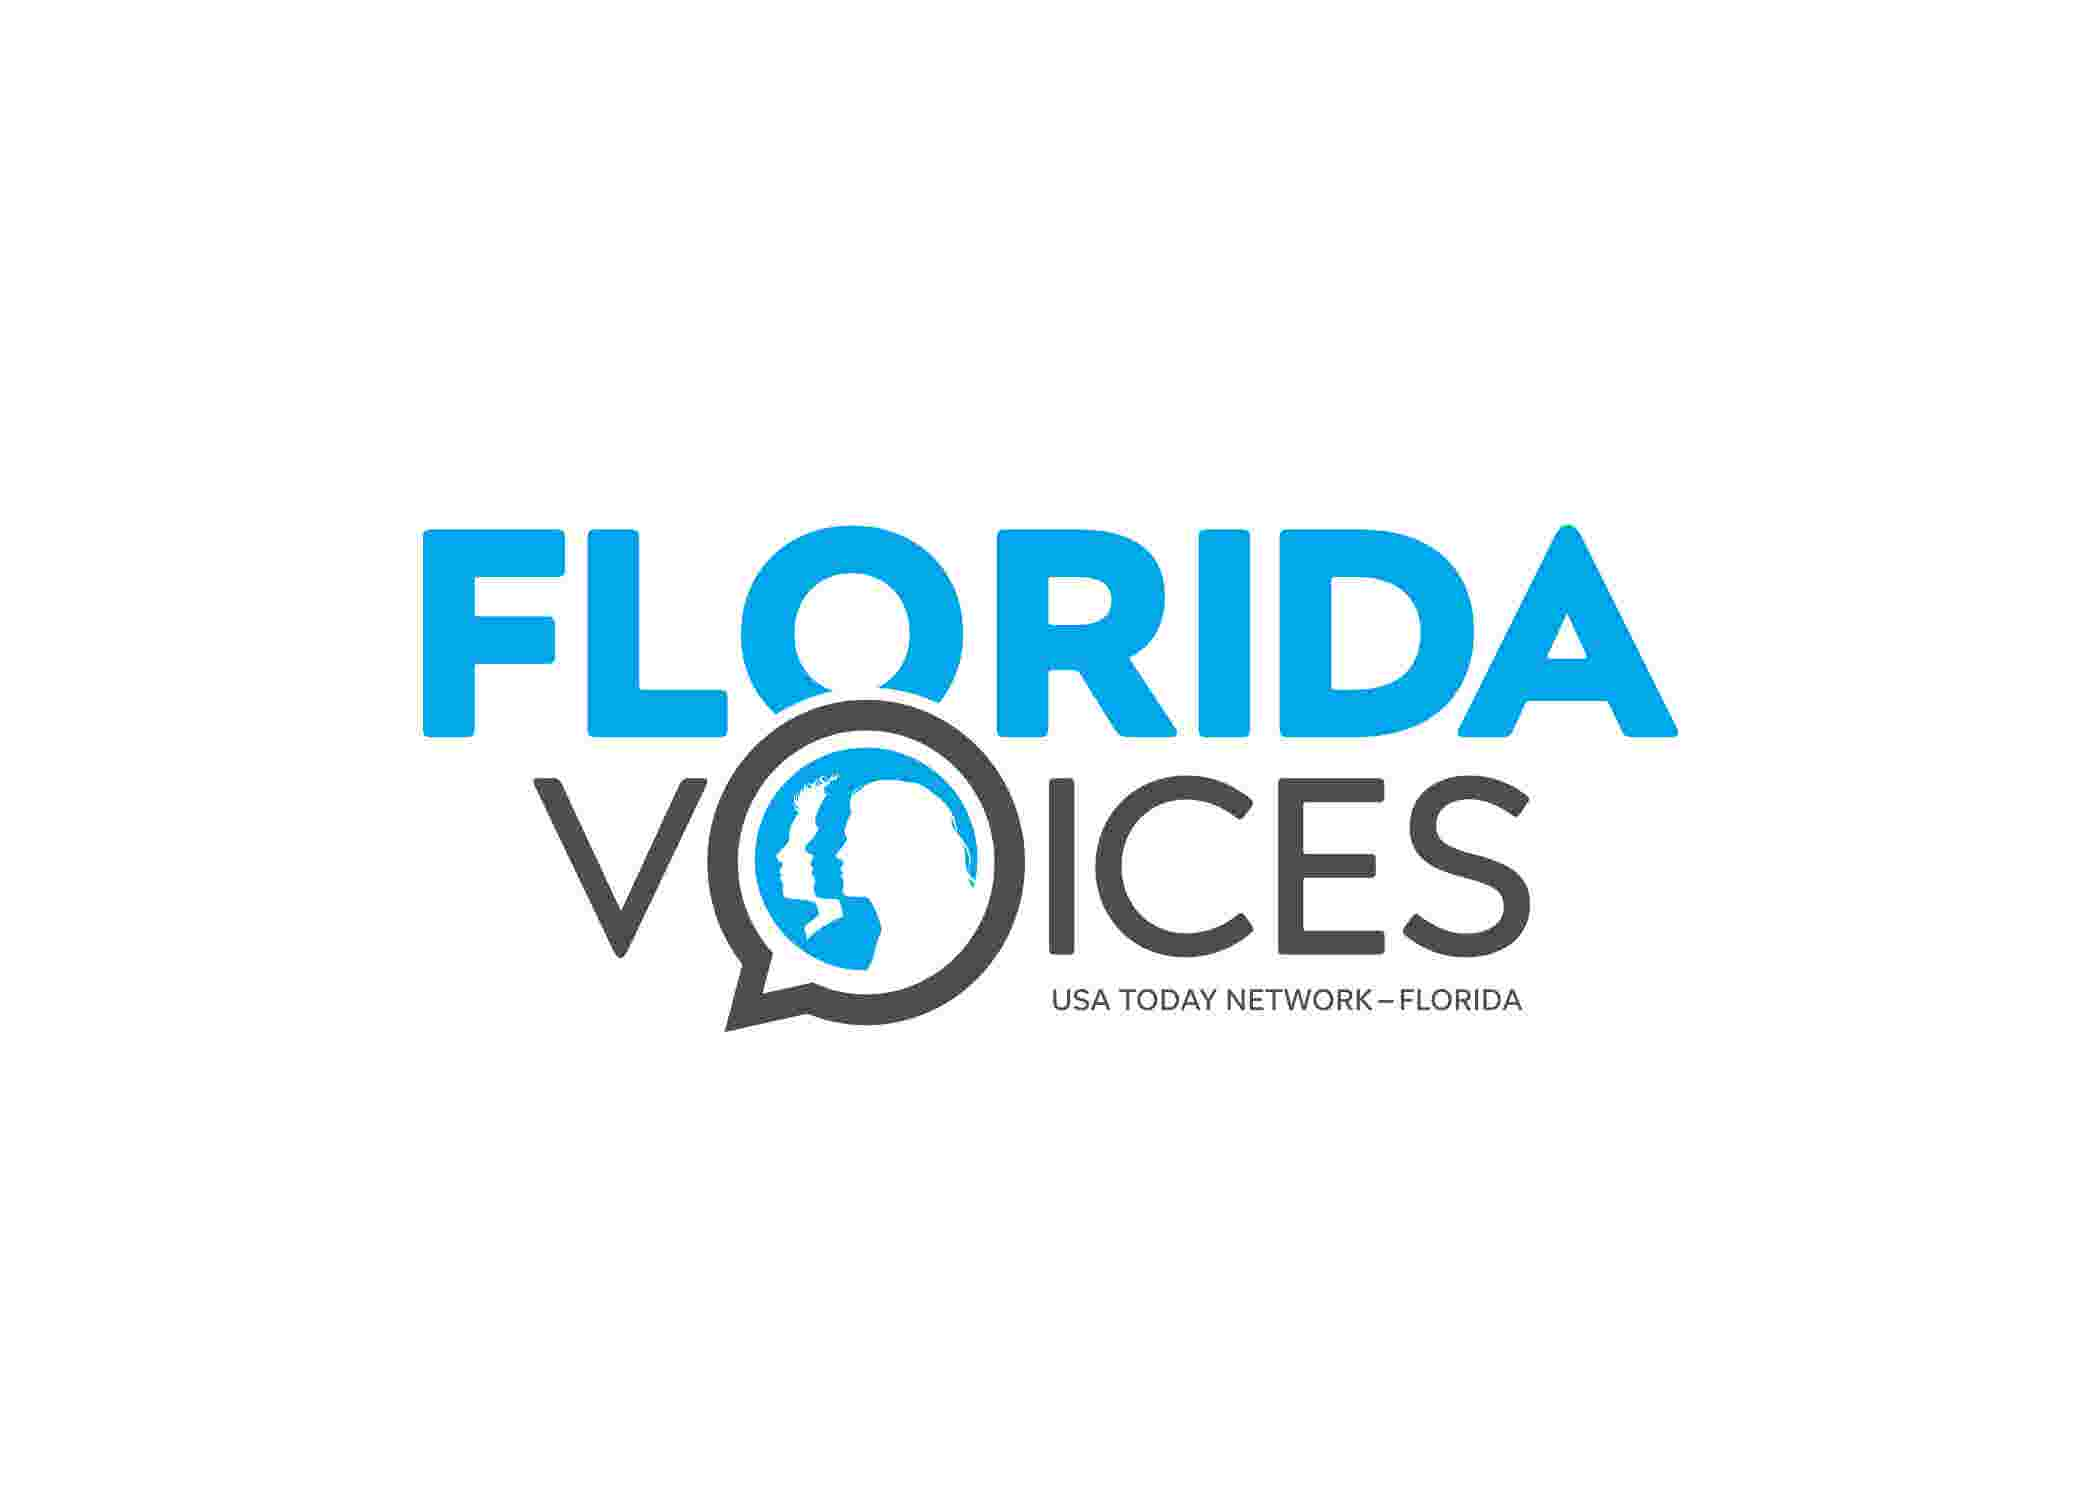 Florida Voices to spotlight key issues ahead of 2018 elections